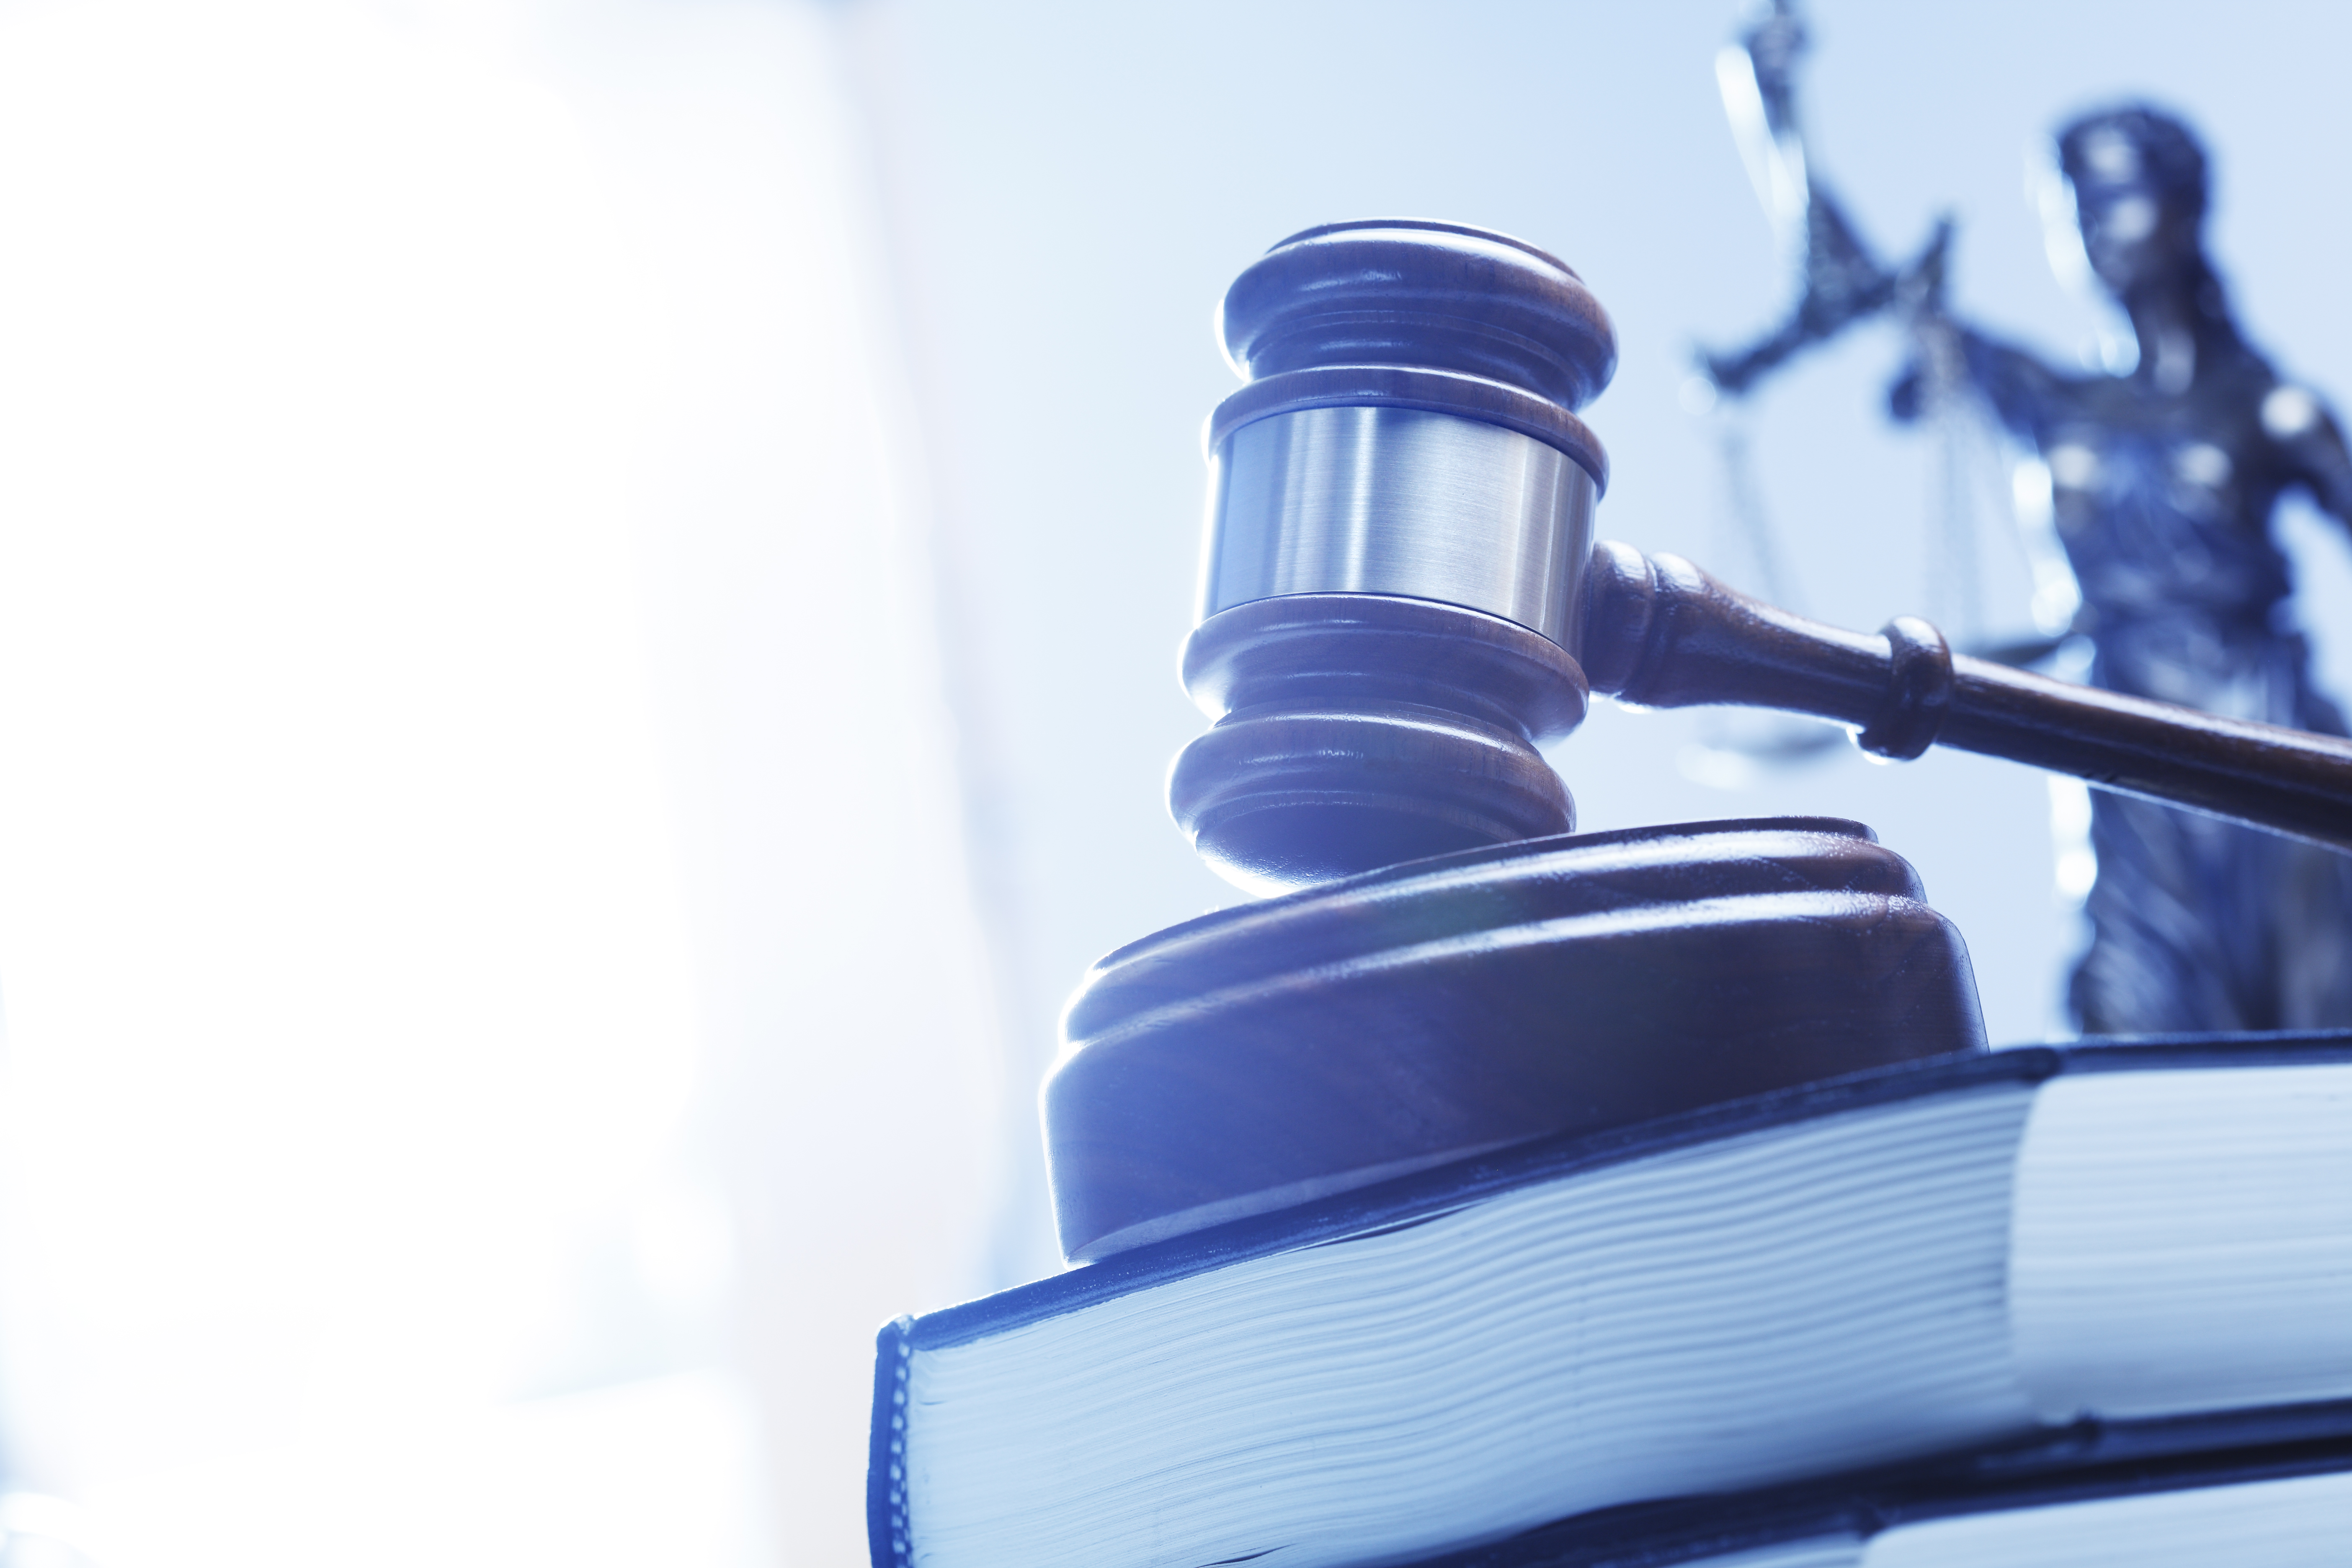 gavel on top of legal books